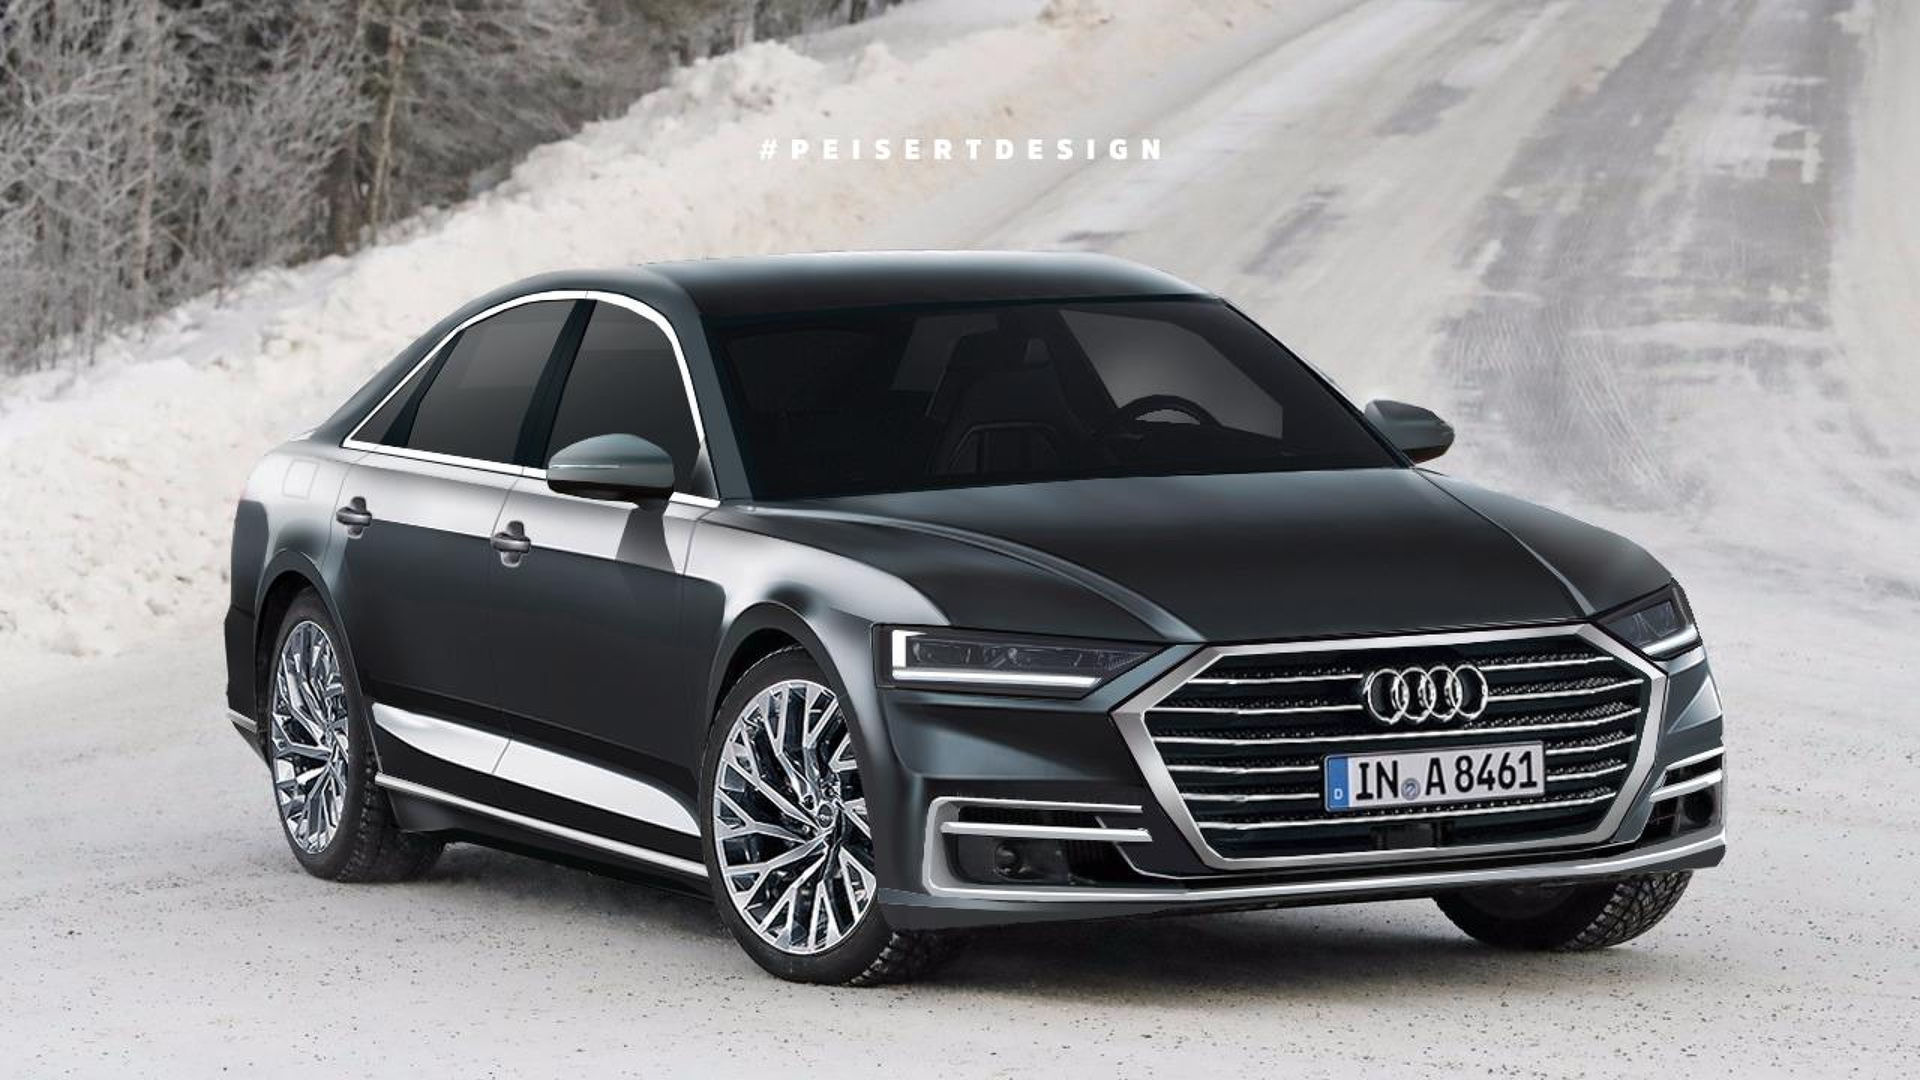 2018 audi a8 rendering previews a sharp looking luxury sedan